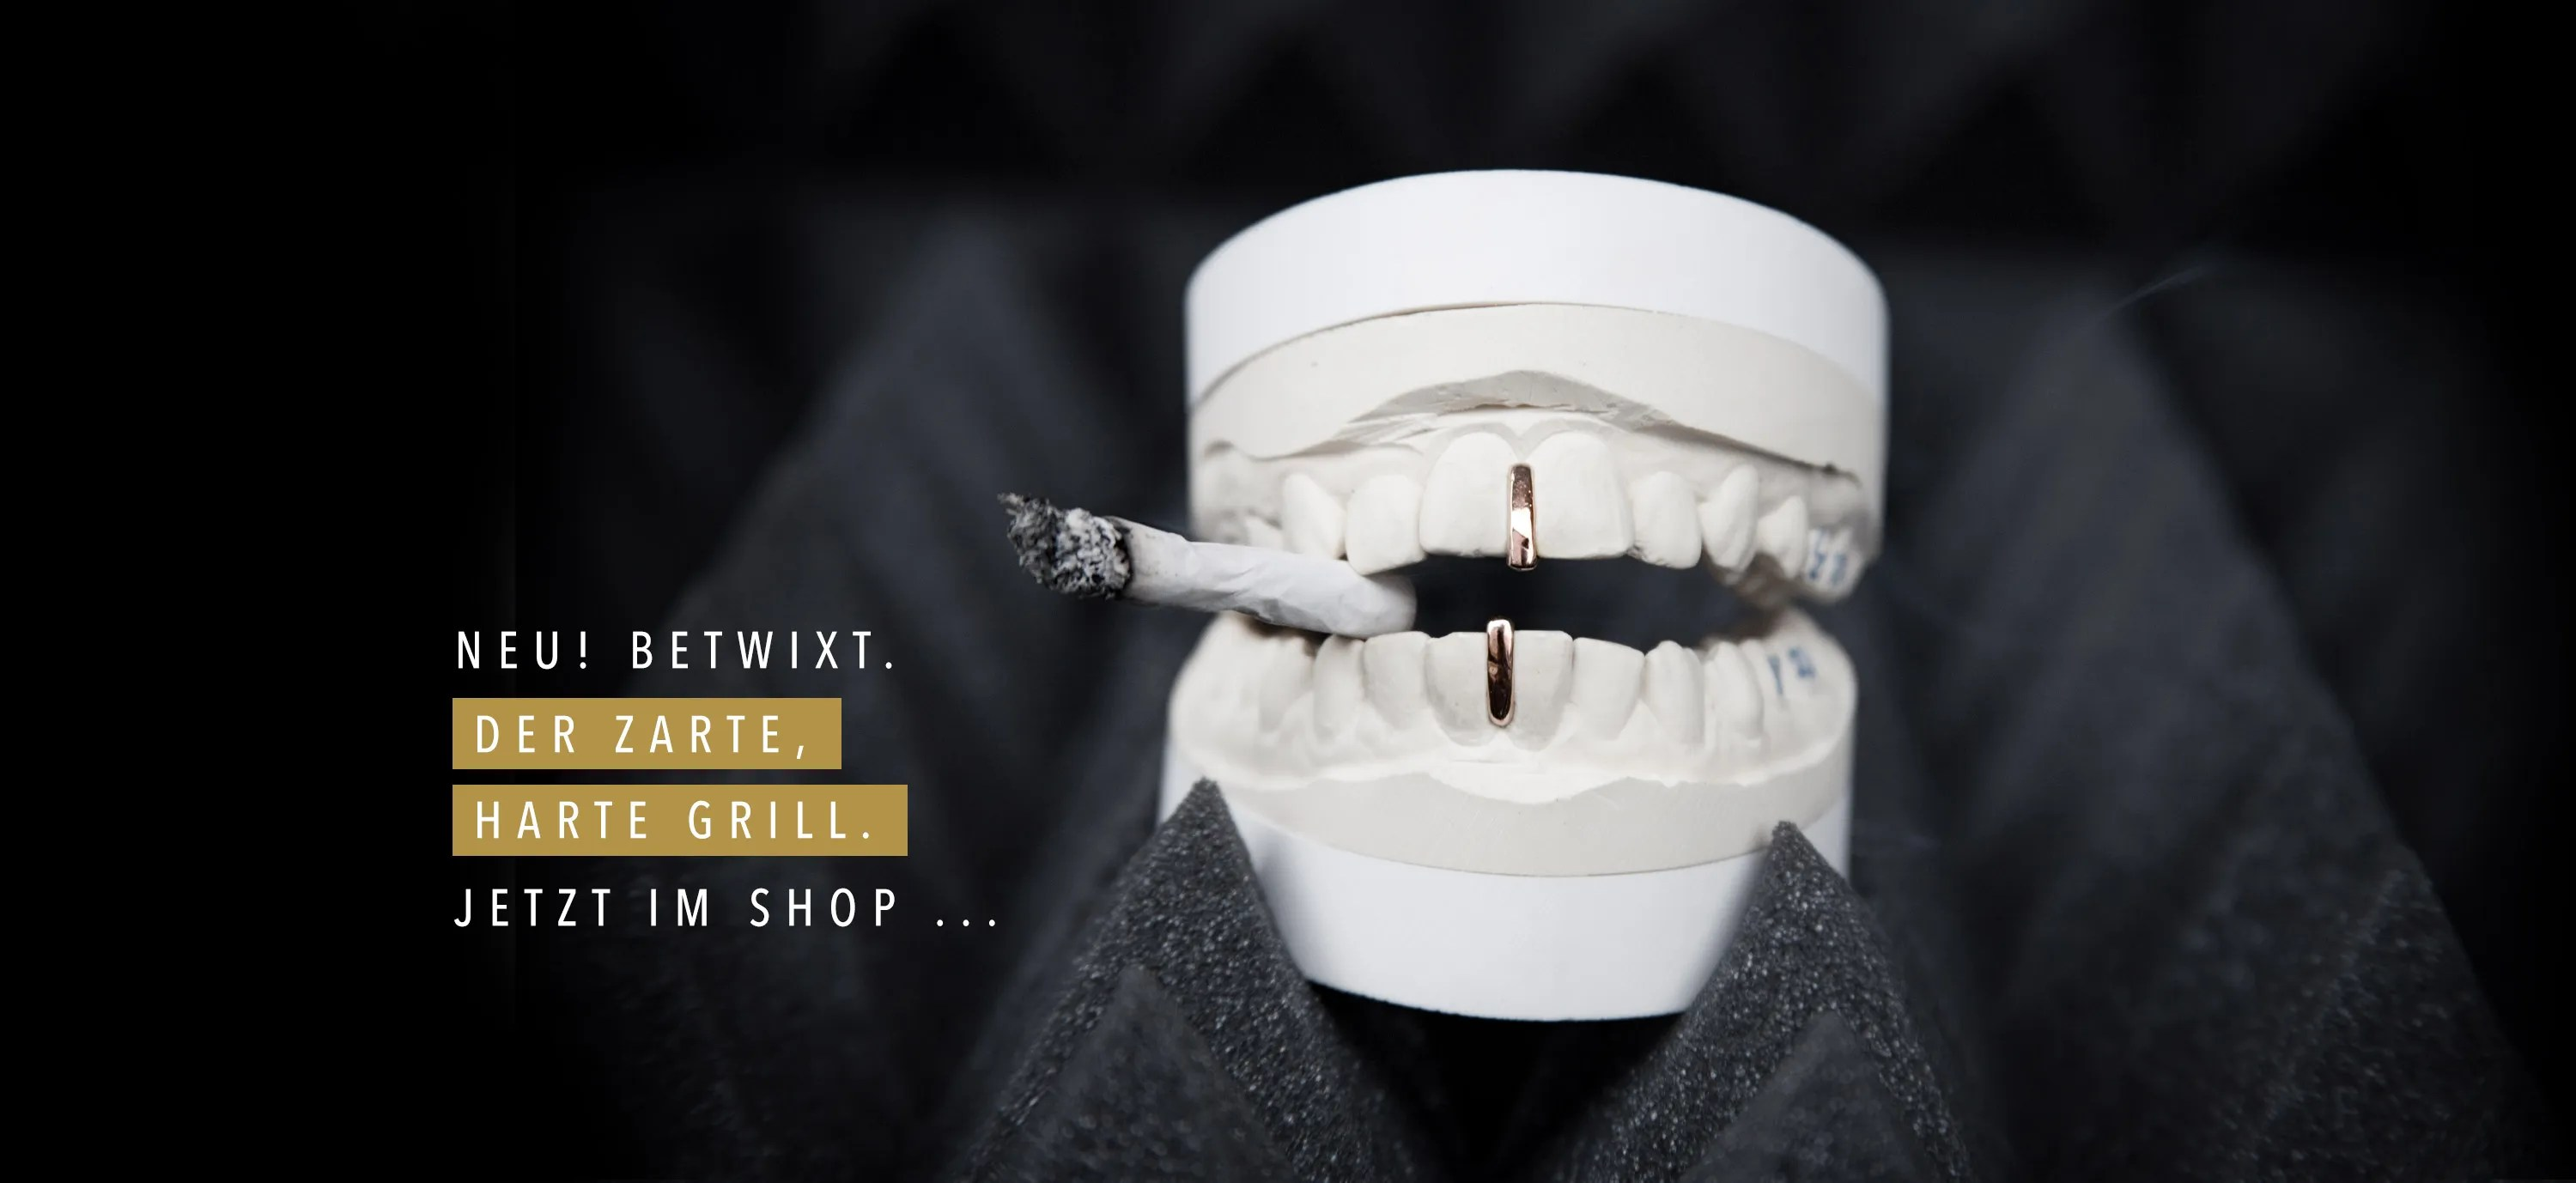 Betwixt - Stipluv - Smilez and Shine - Berlin Jewelry - Grillz im Online Shop